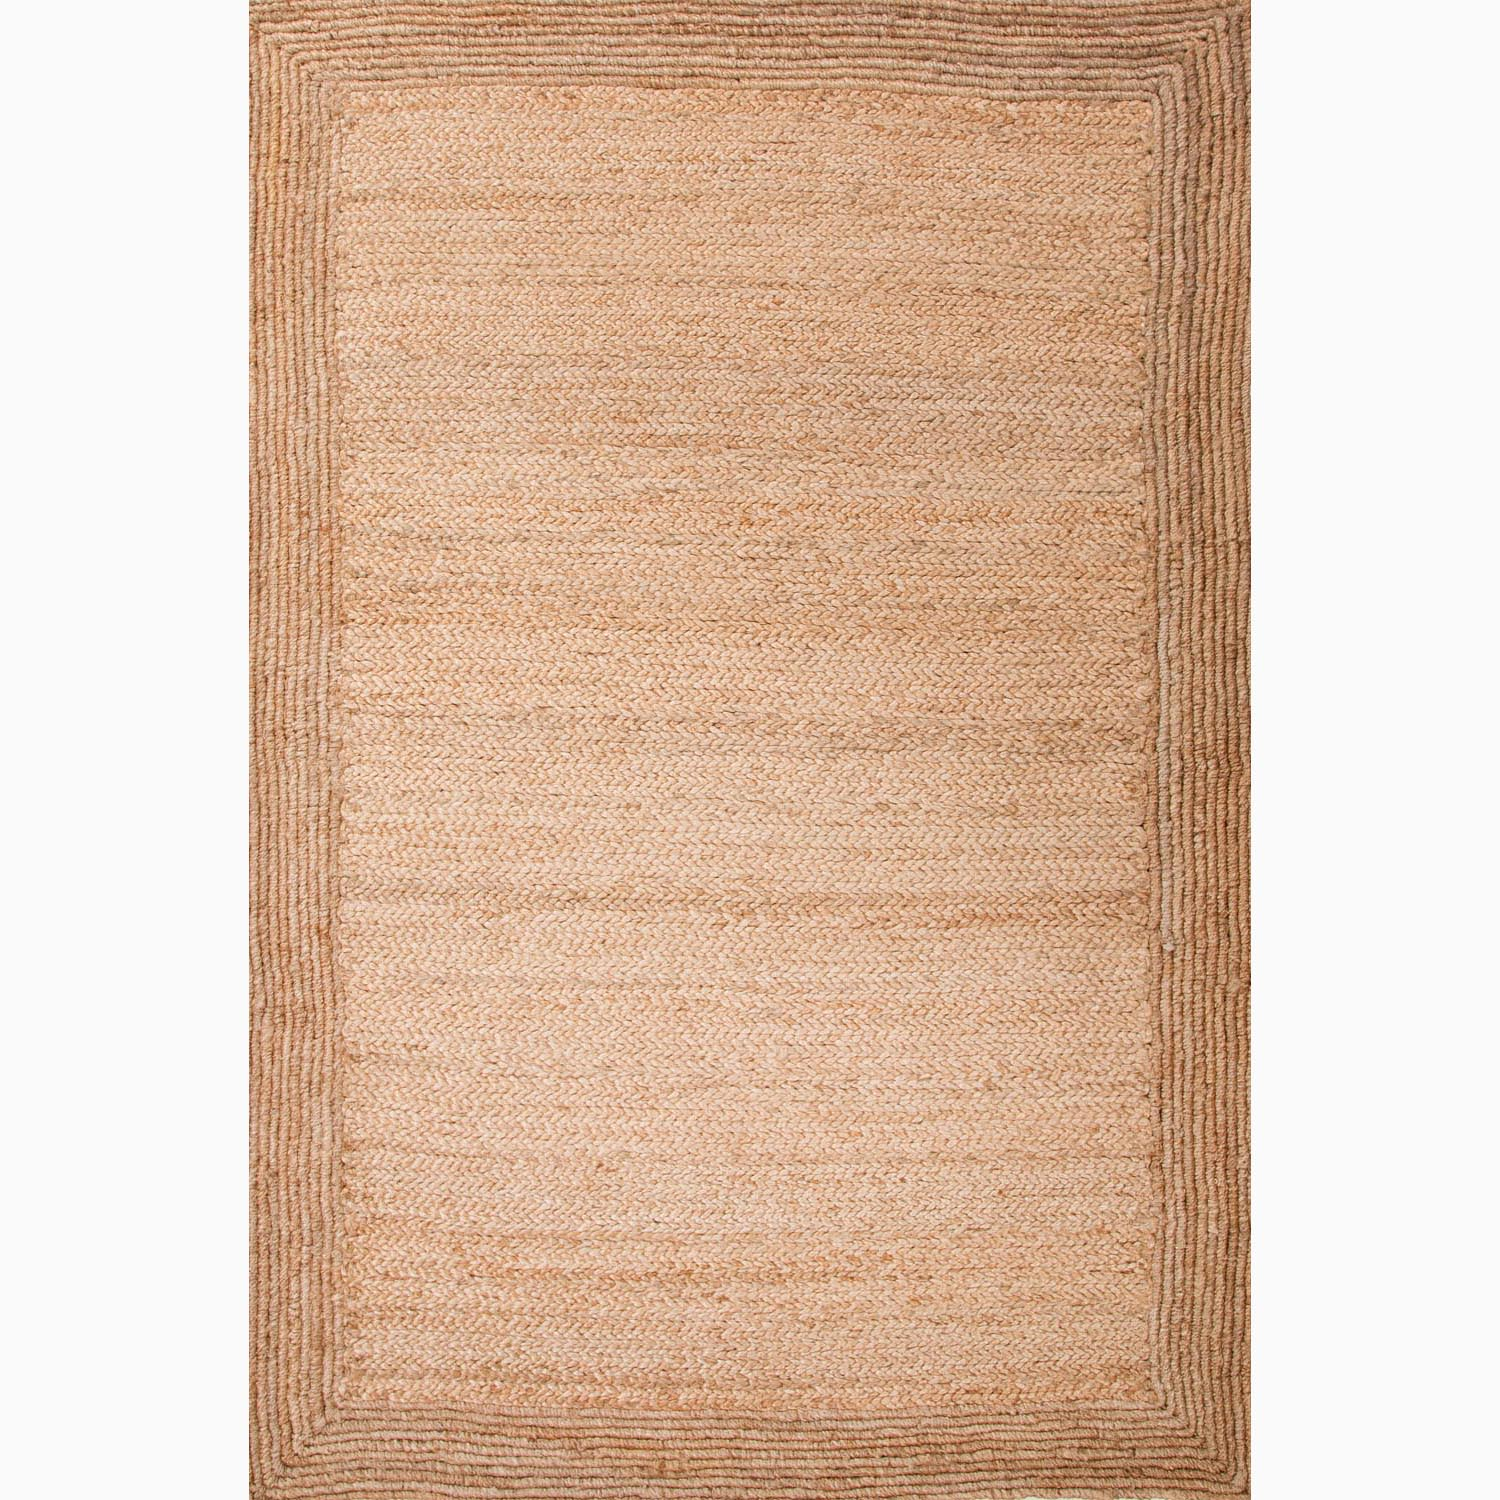 Handmade Taupe/ Tan Jute Natural Textured Rug (2' x 3')